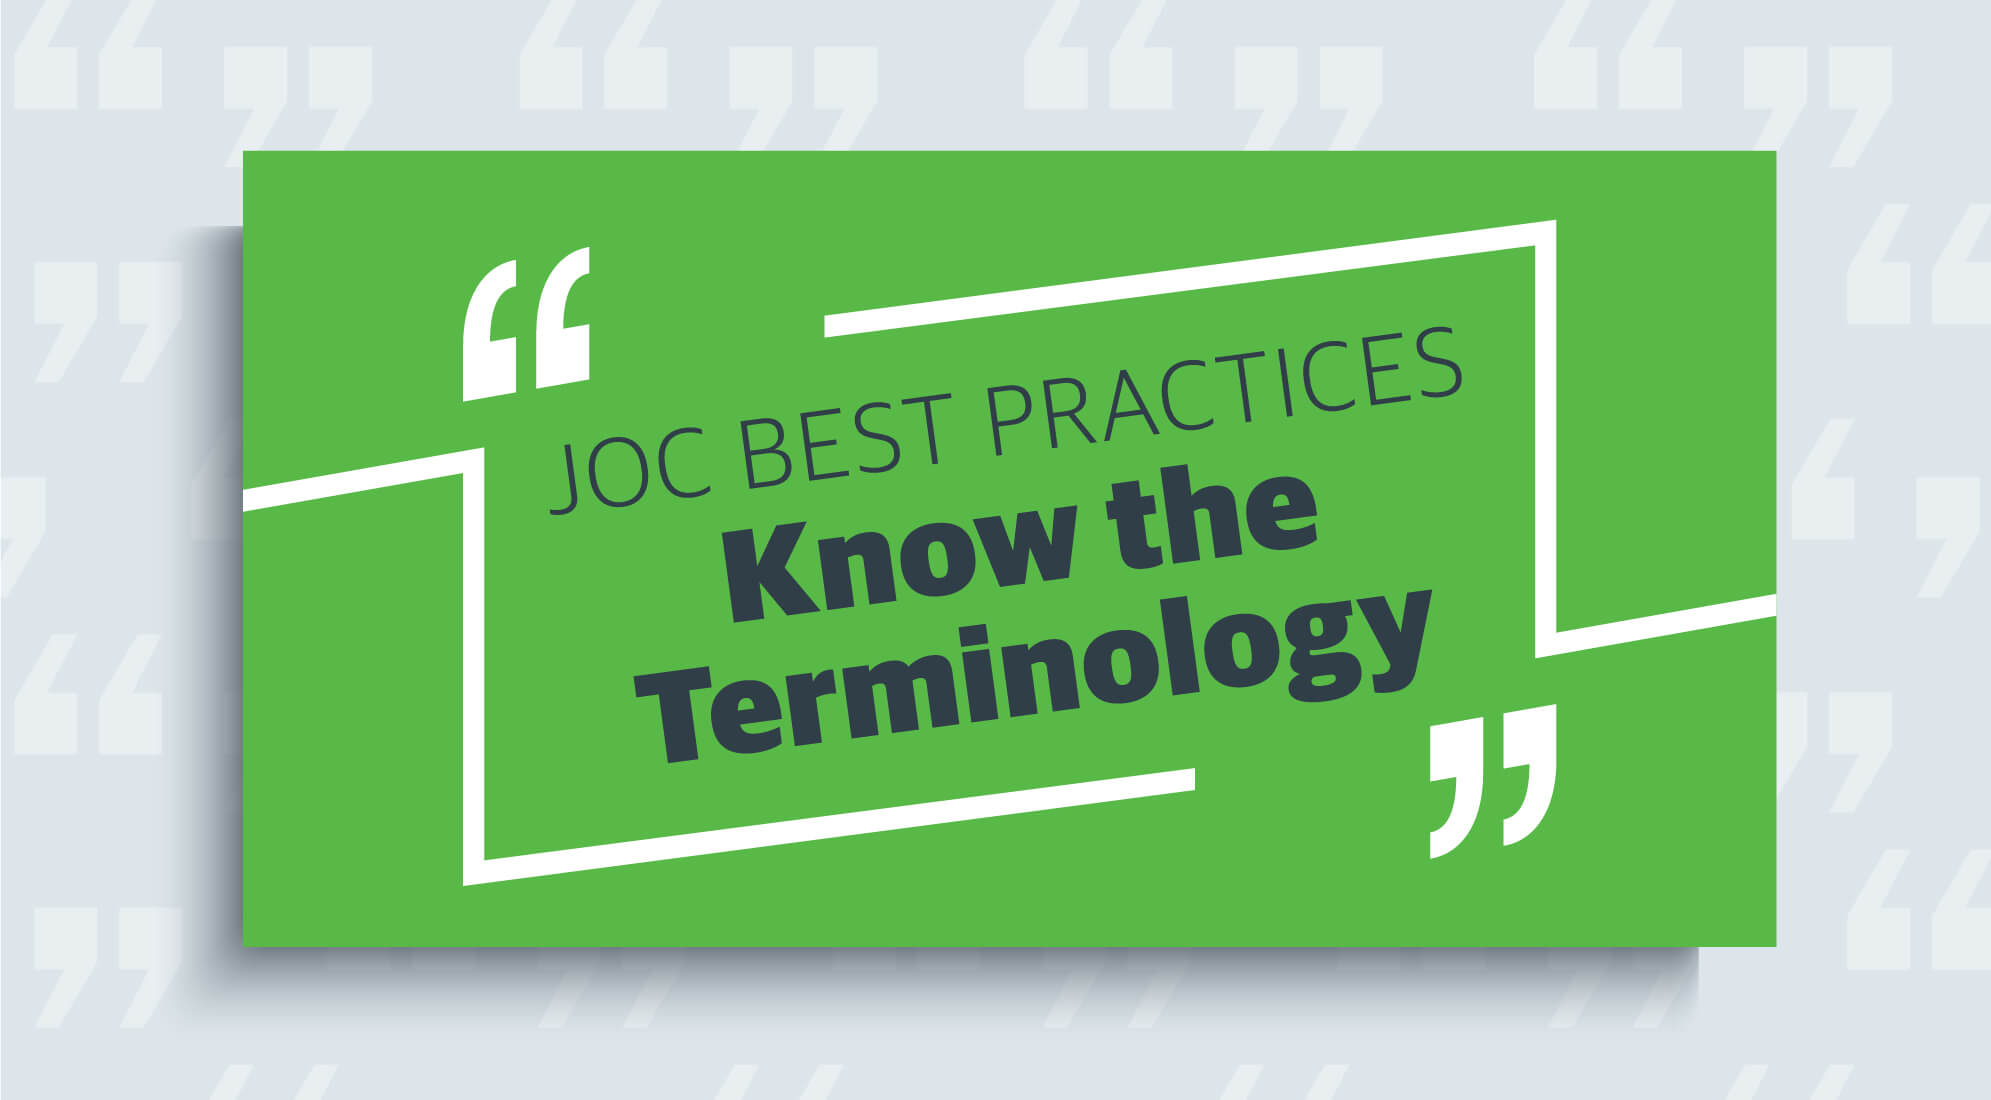 JOC Best Practices: 11 Key Terms for Job Order Contracting 1